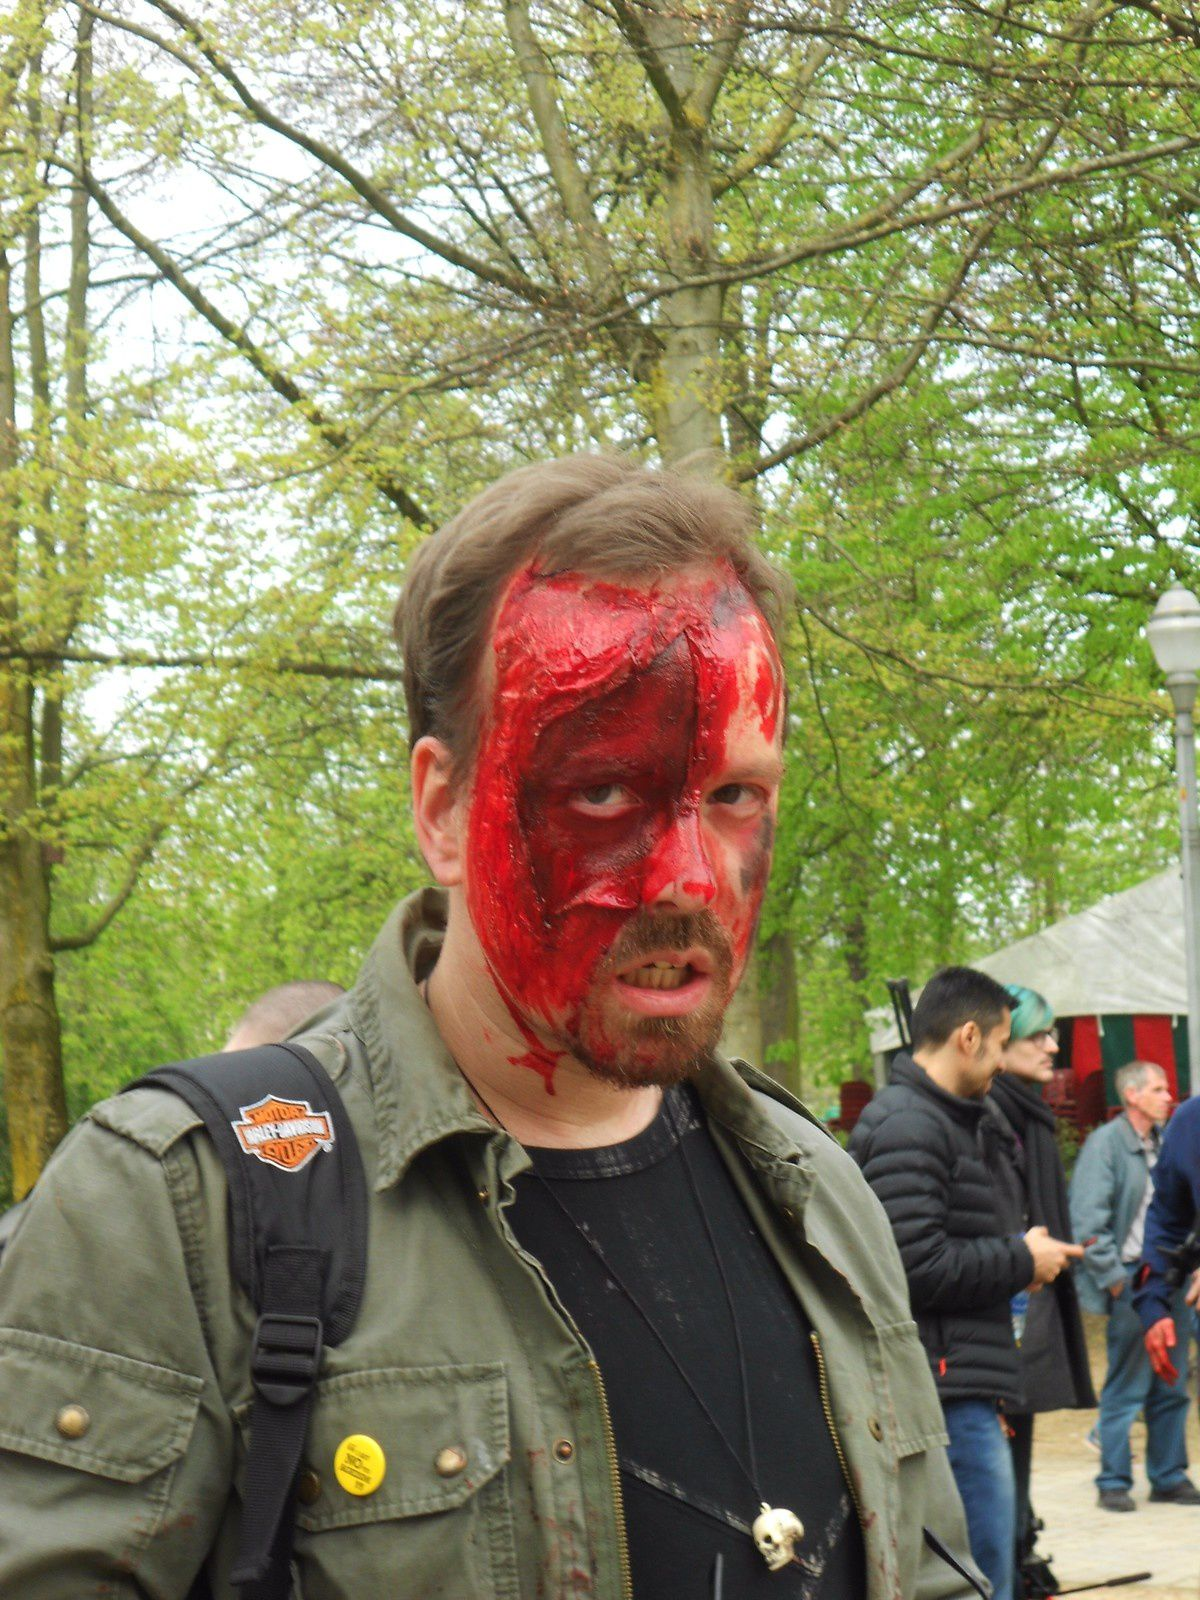 Divers zombies et Cosplay